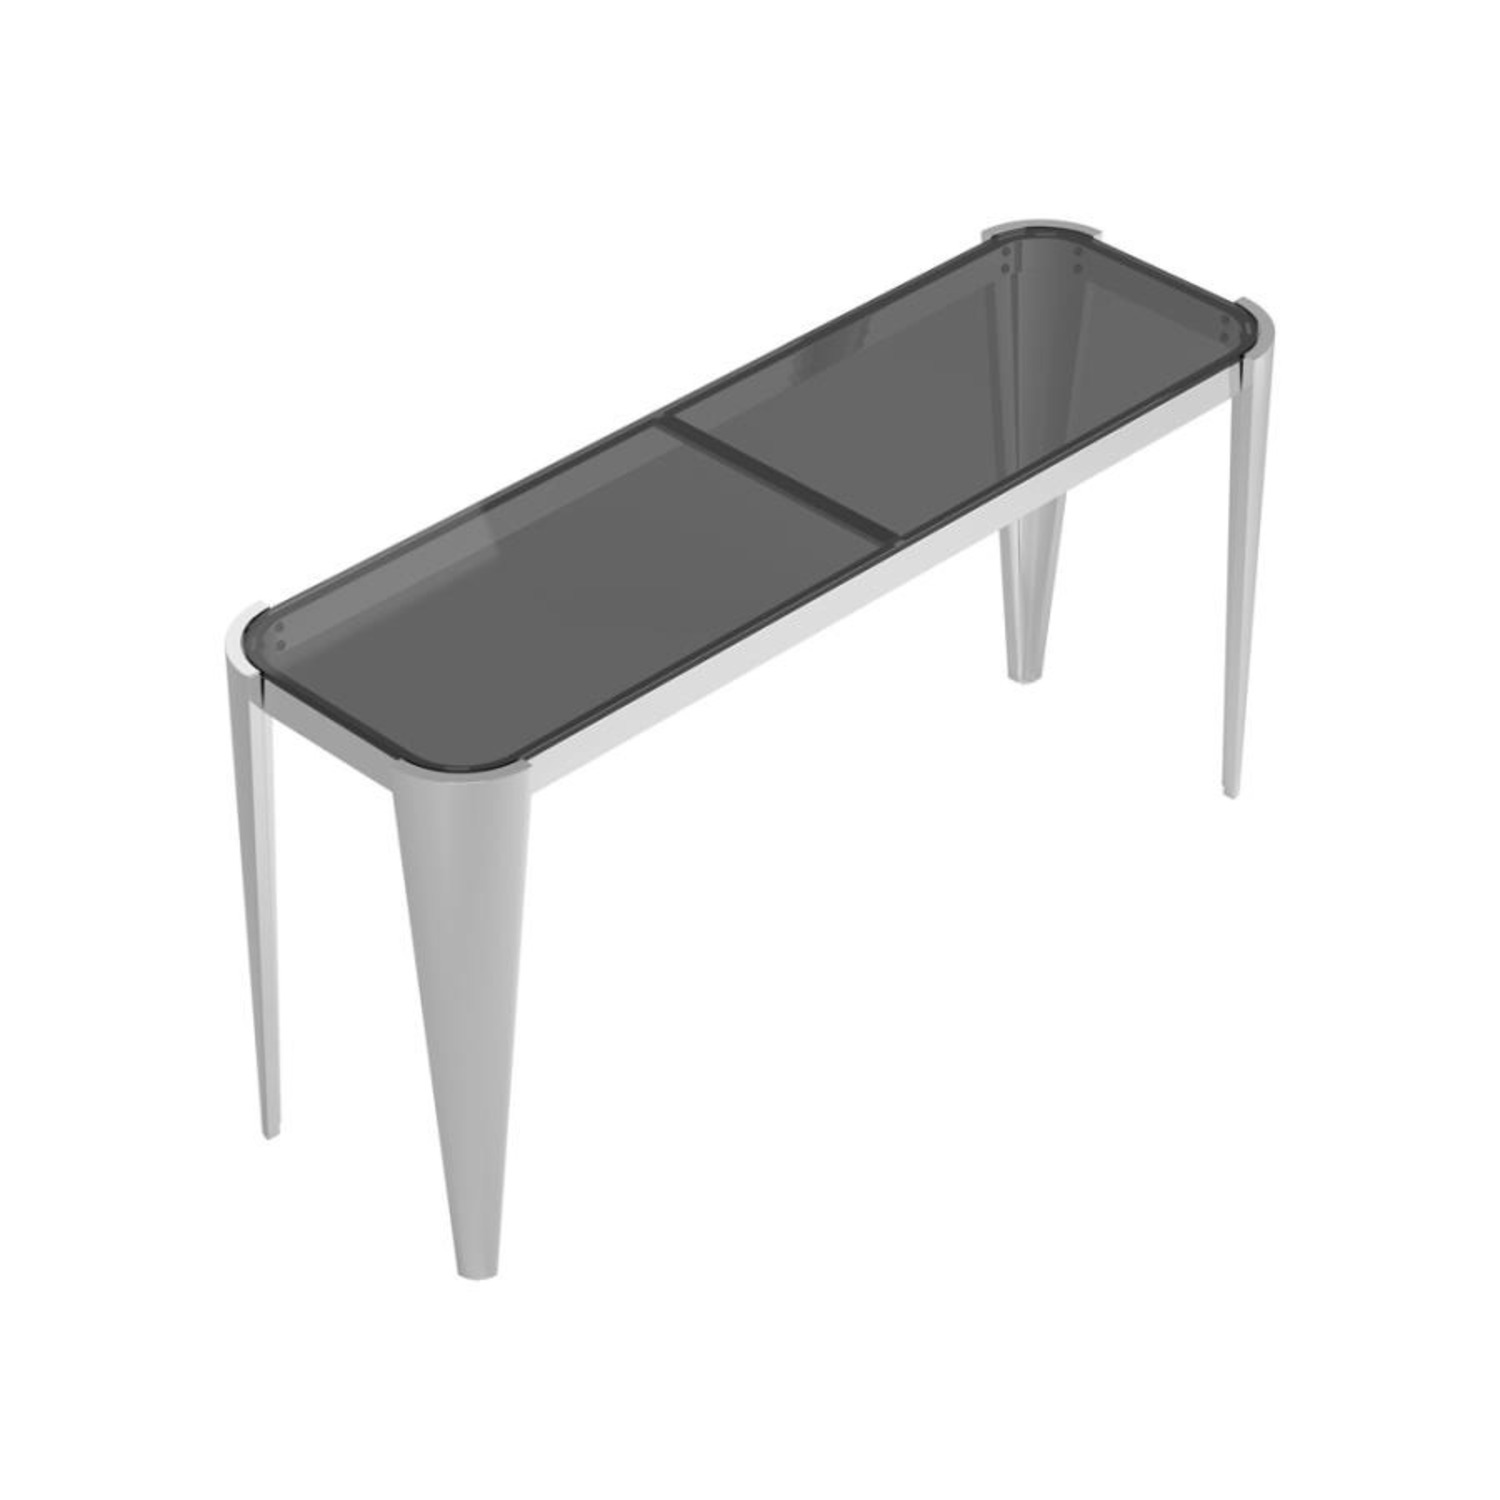 Sofa Table In Silver W/ Grey Tempered Glass Top - image-1